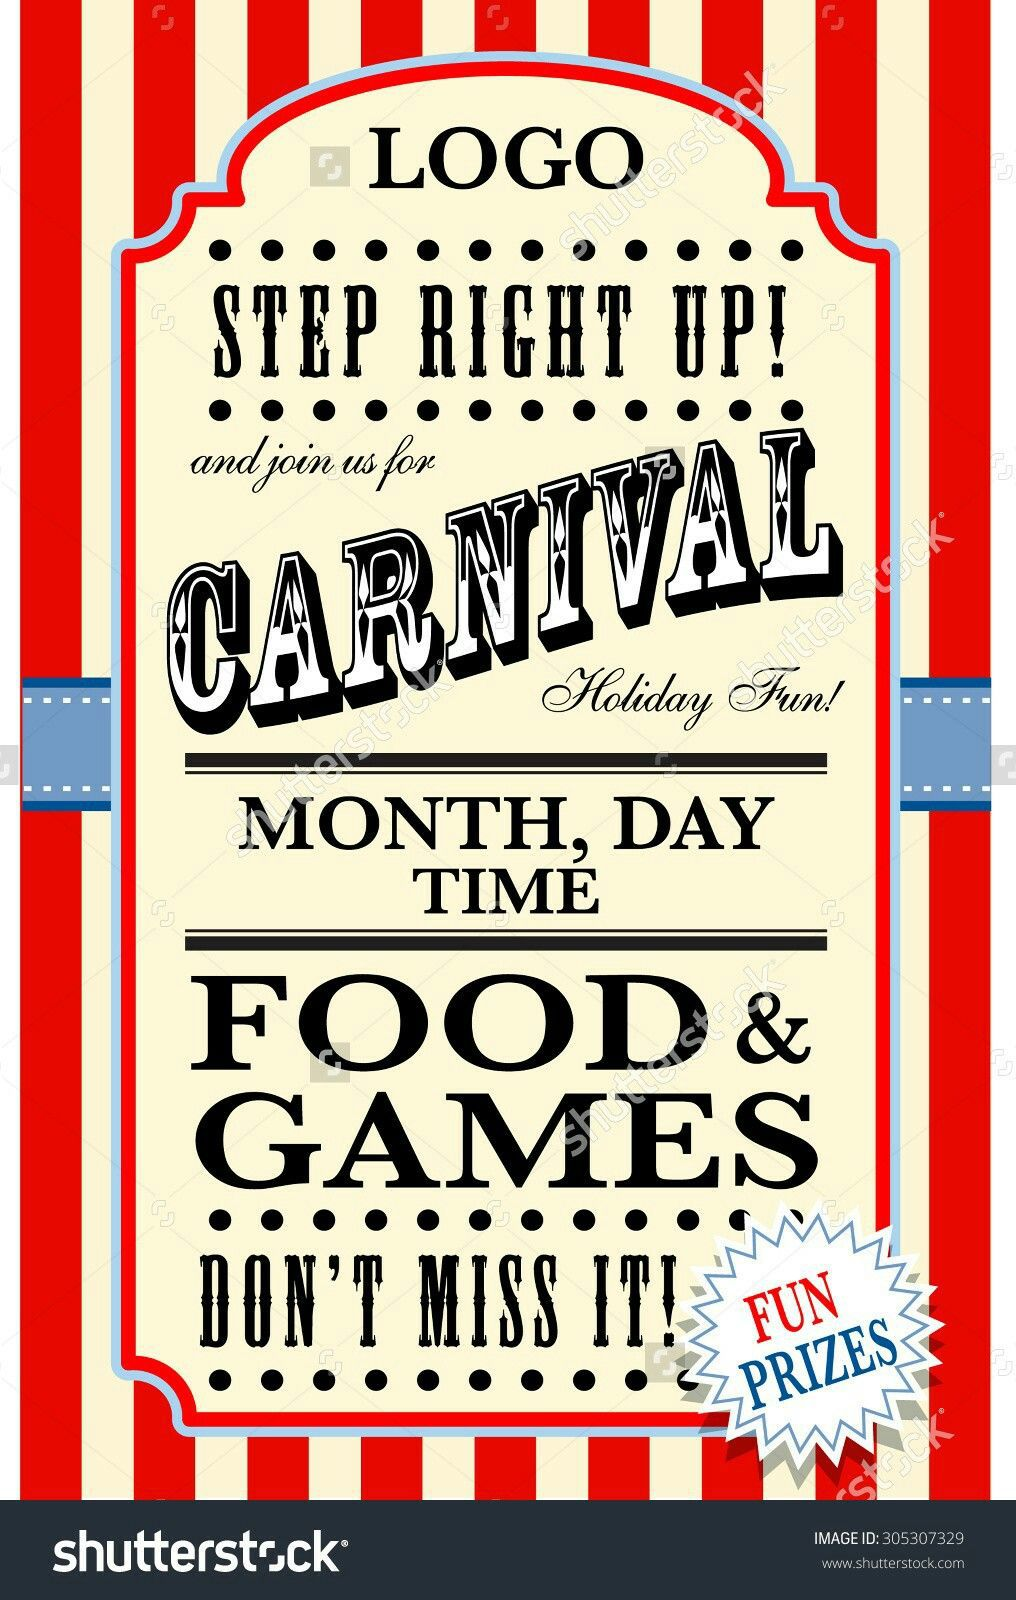 005 Staggering Free School Carnival Flyer Template Photo  Templates DownloadFull